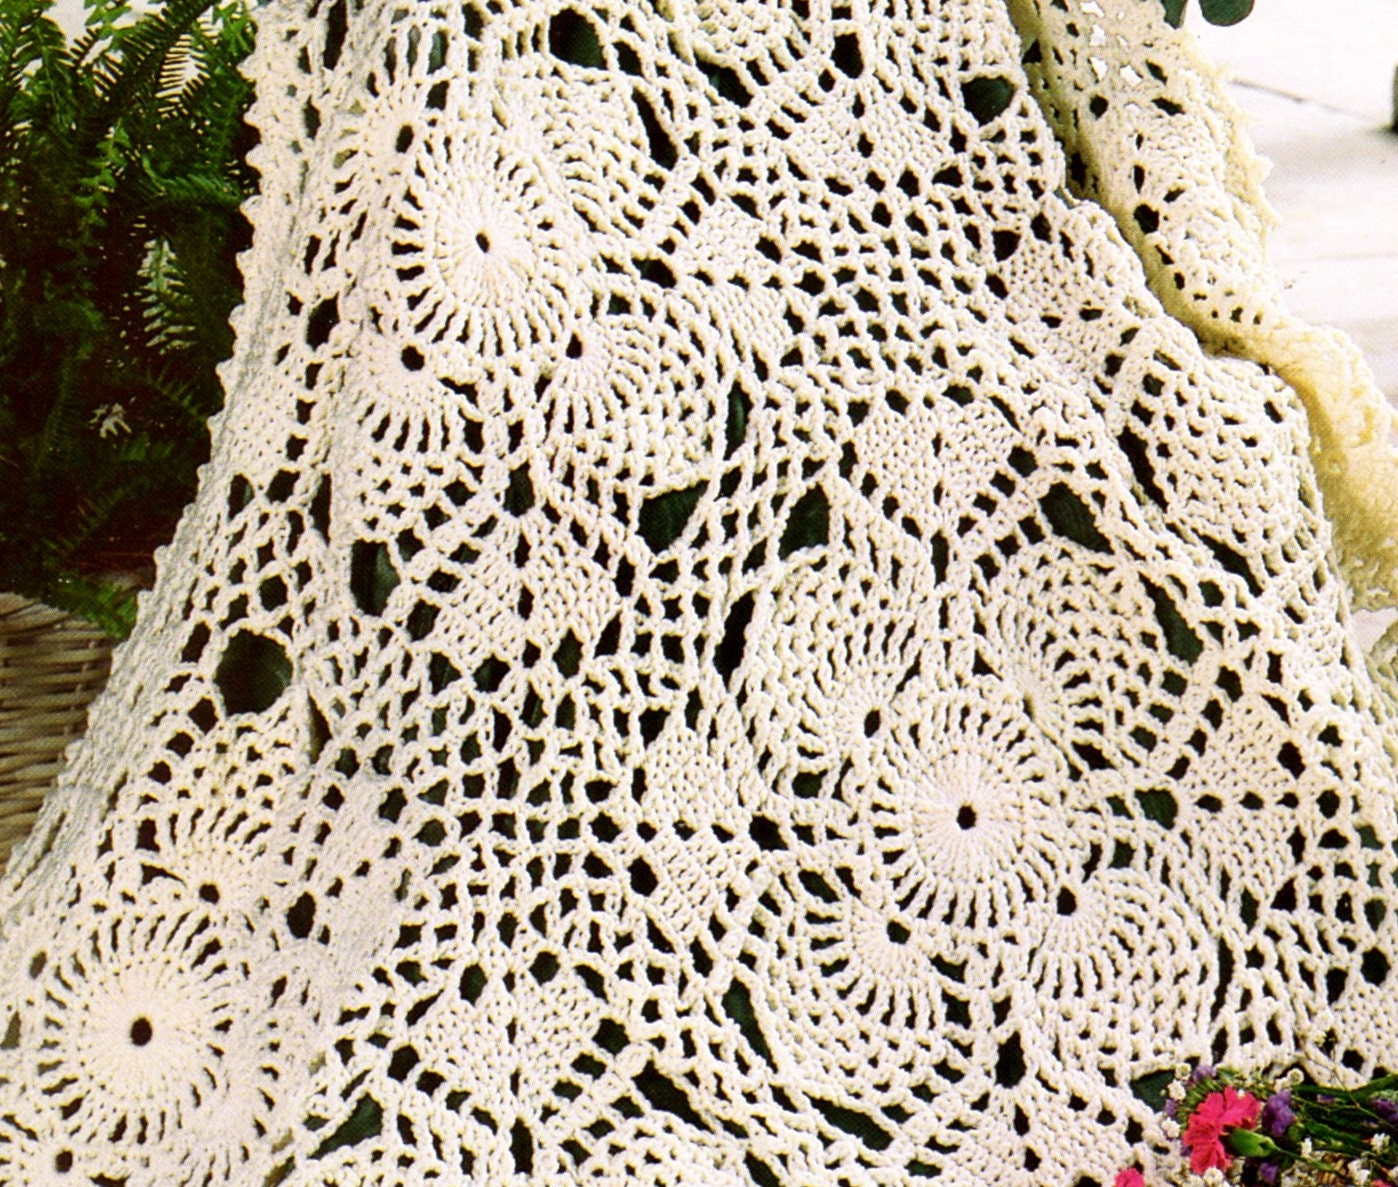 Vintage Lace Crochet Pineapple Afghan Pattern PDF Instant Digital ...